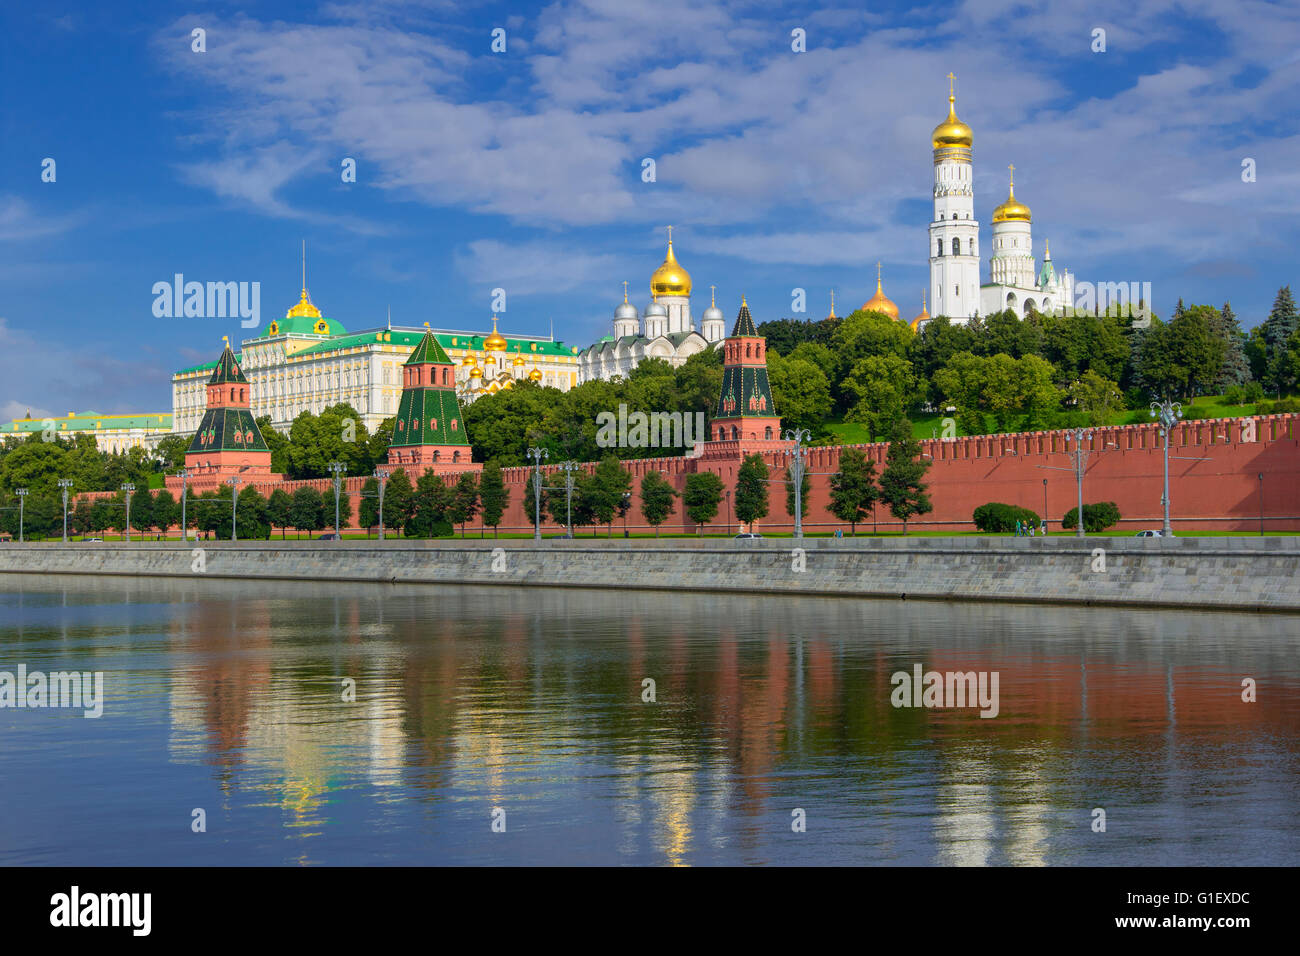 View of Kremlin churches and towers from Moscow River Bridge - Stock Image